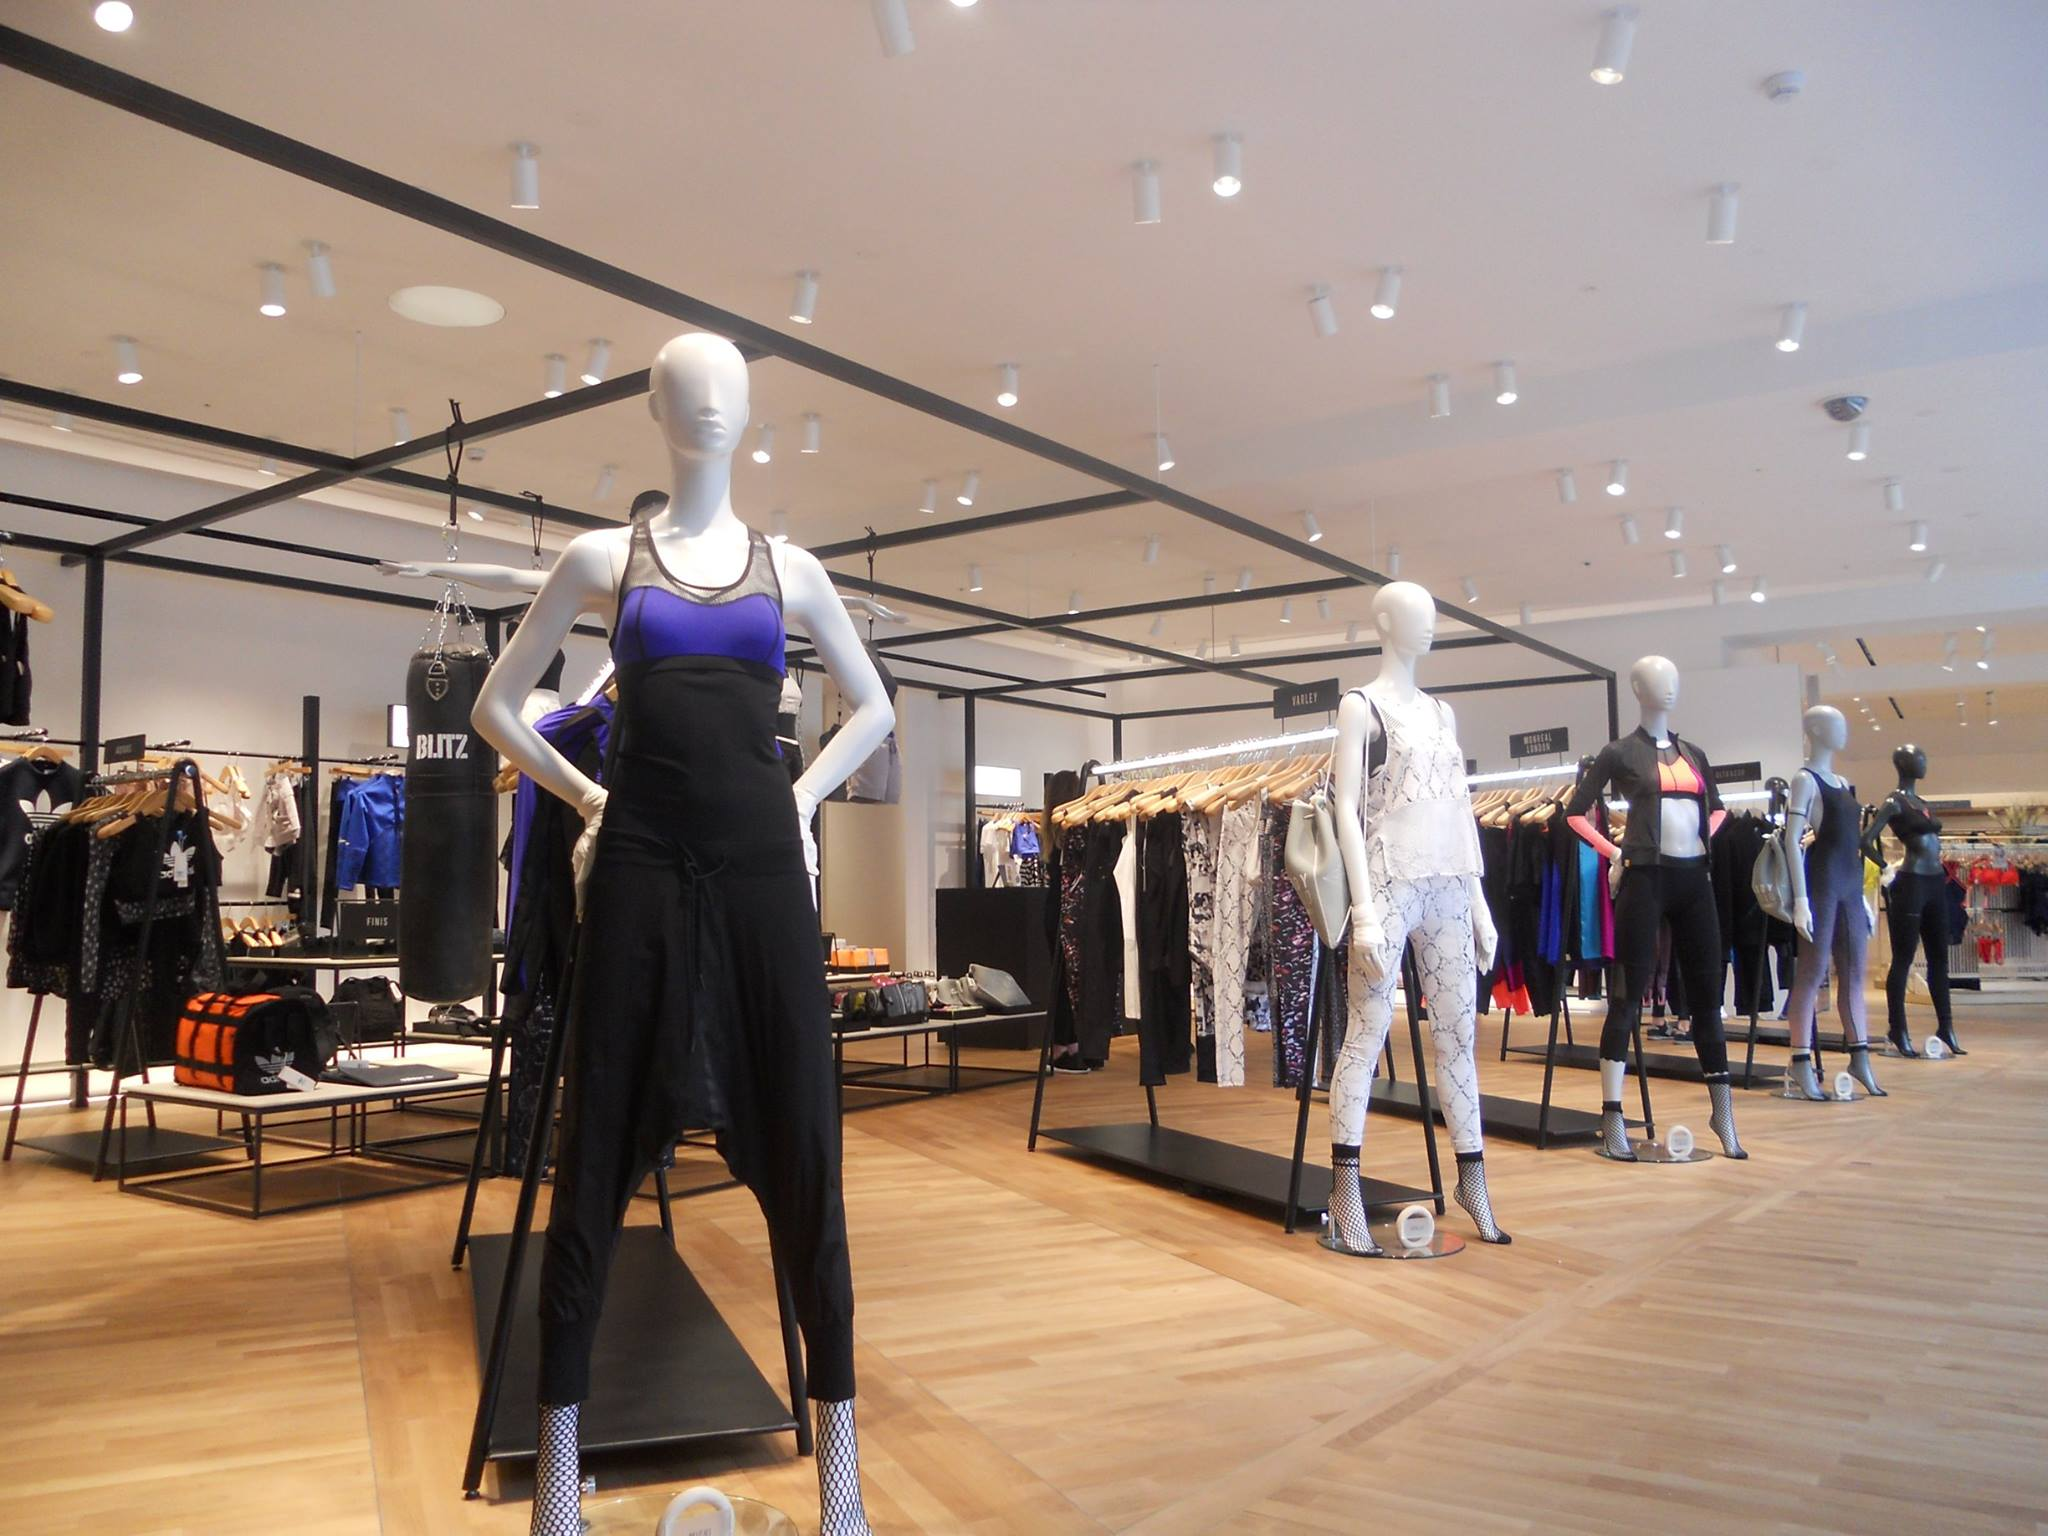 selfridges-body-studio-an-attention-to-duty